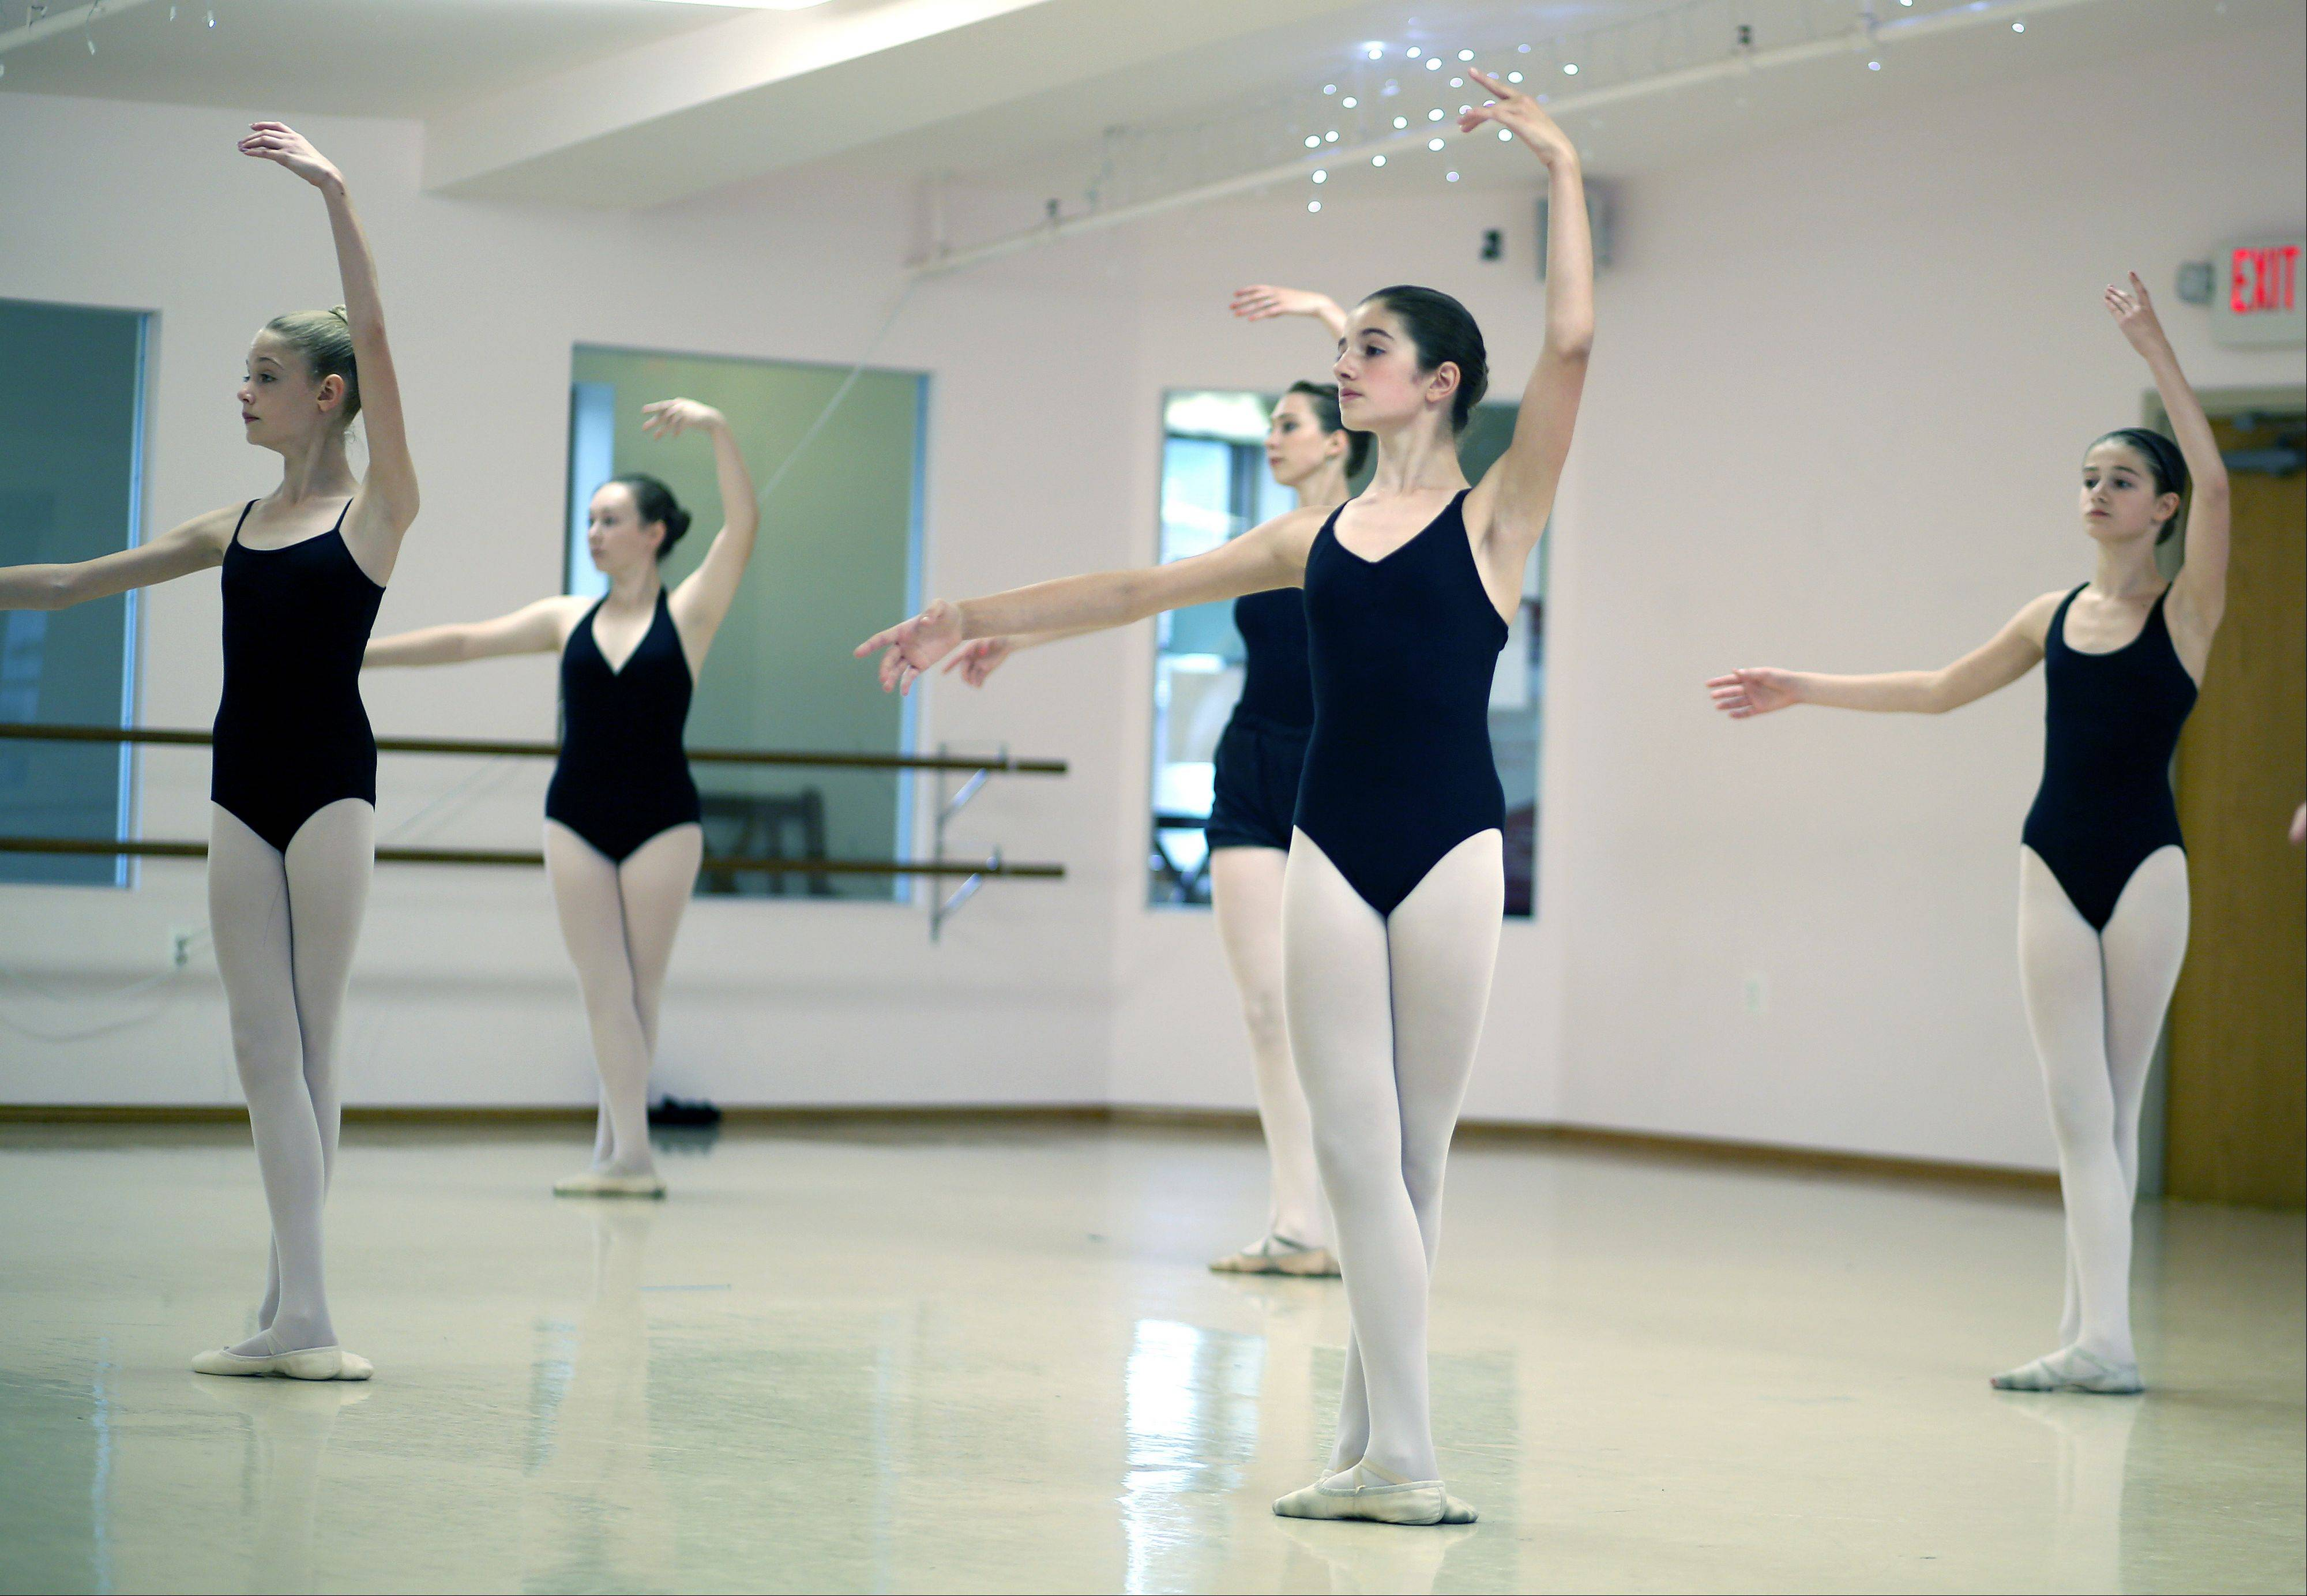 Eleven-year-old Emma Sidari, center, of St. Charles will be attending an internship at Bolshoi Brasil this summer to study ballet.